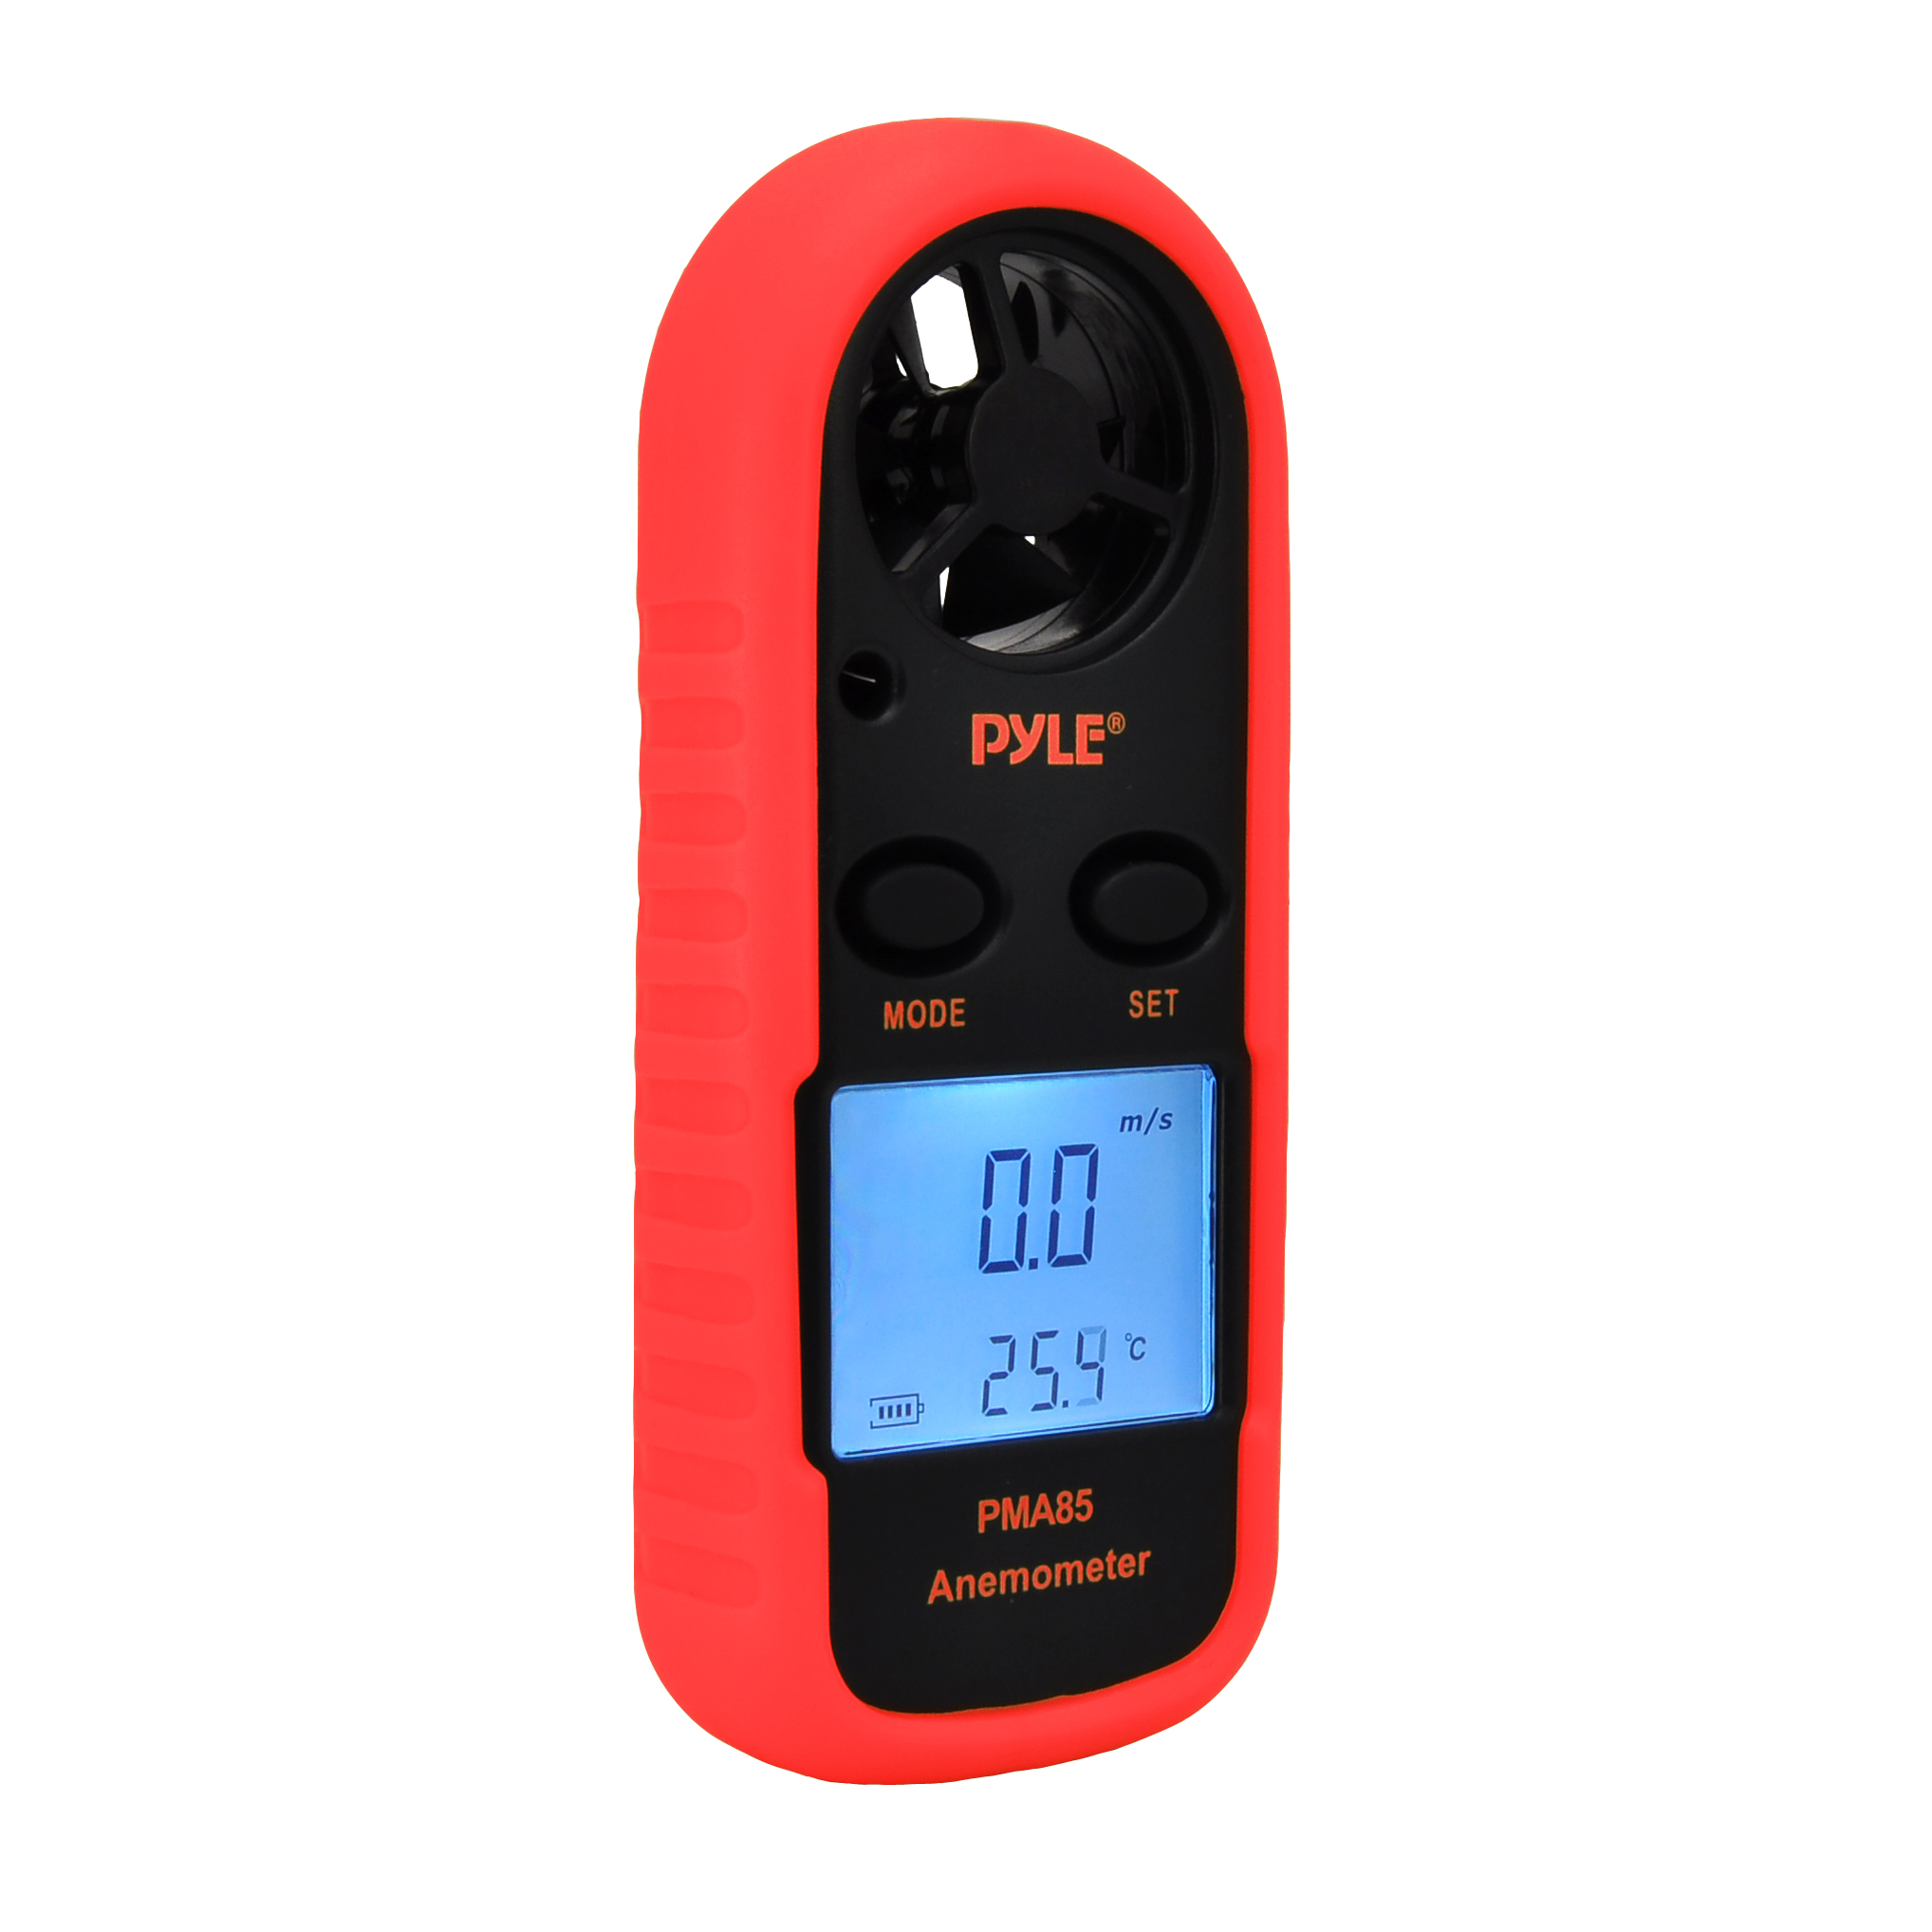 Pyle PMA85 Digital Anemometer - Measuring Wind and Temperature w/ LCD Backlight